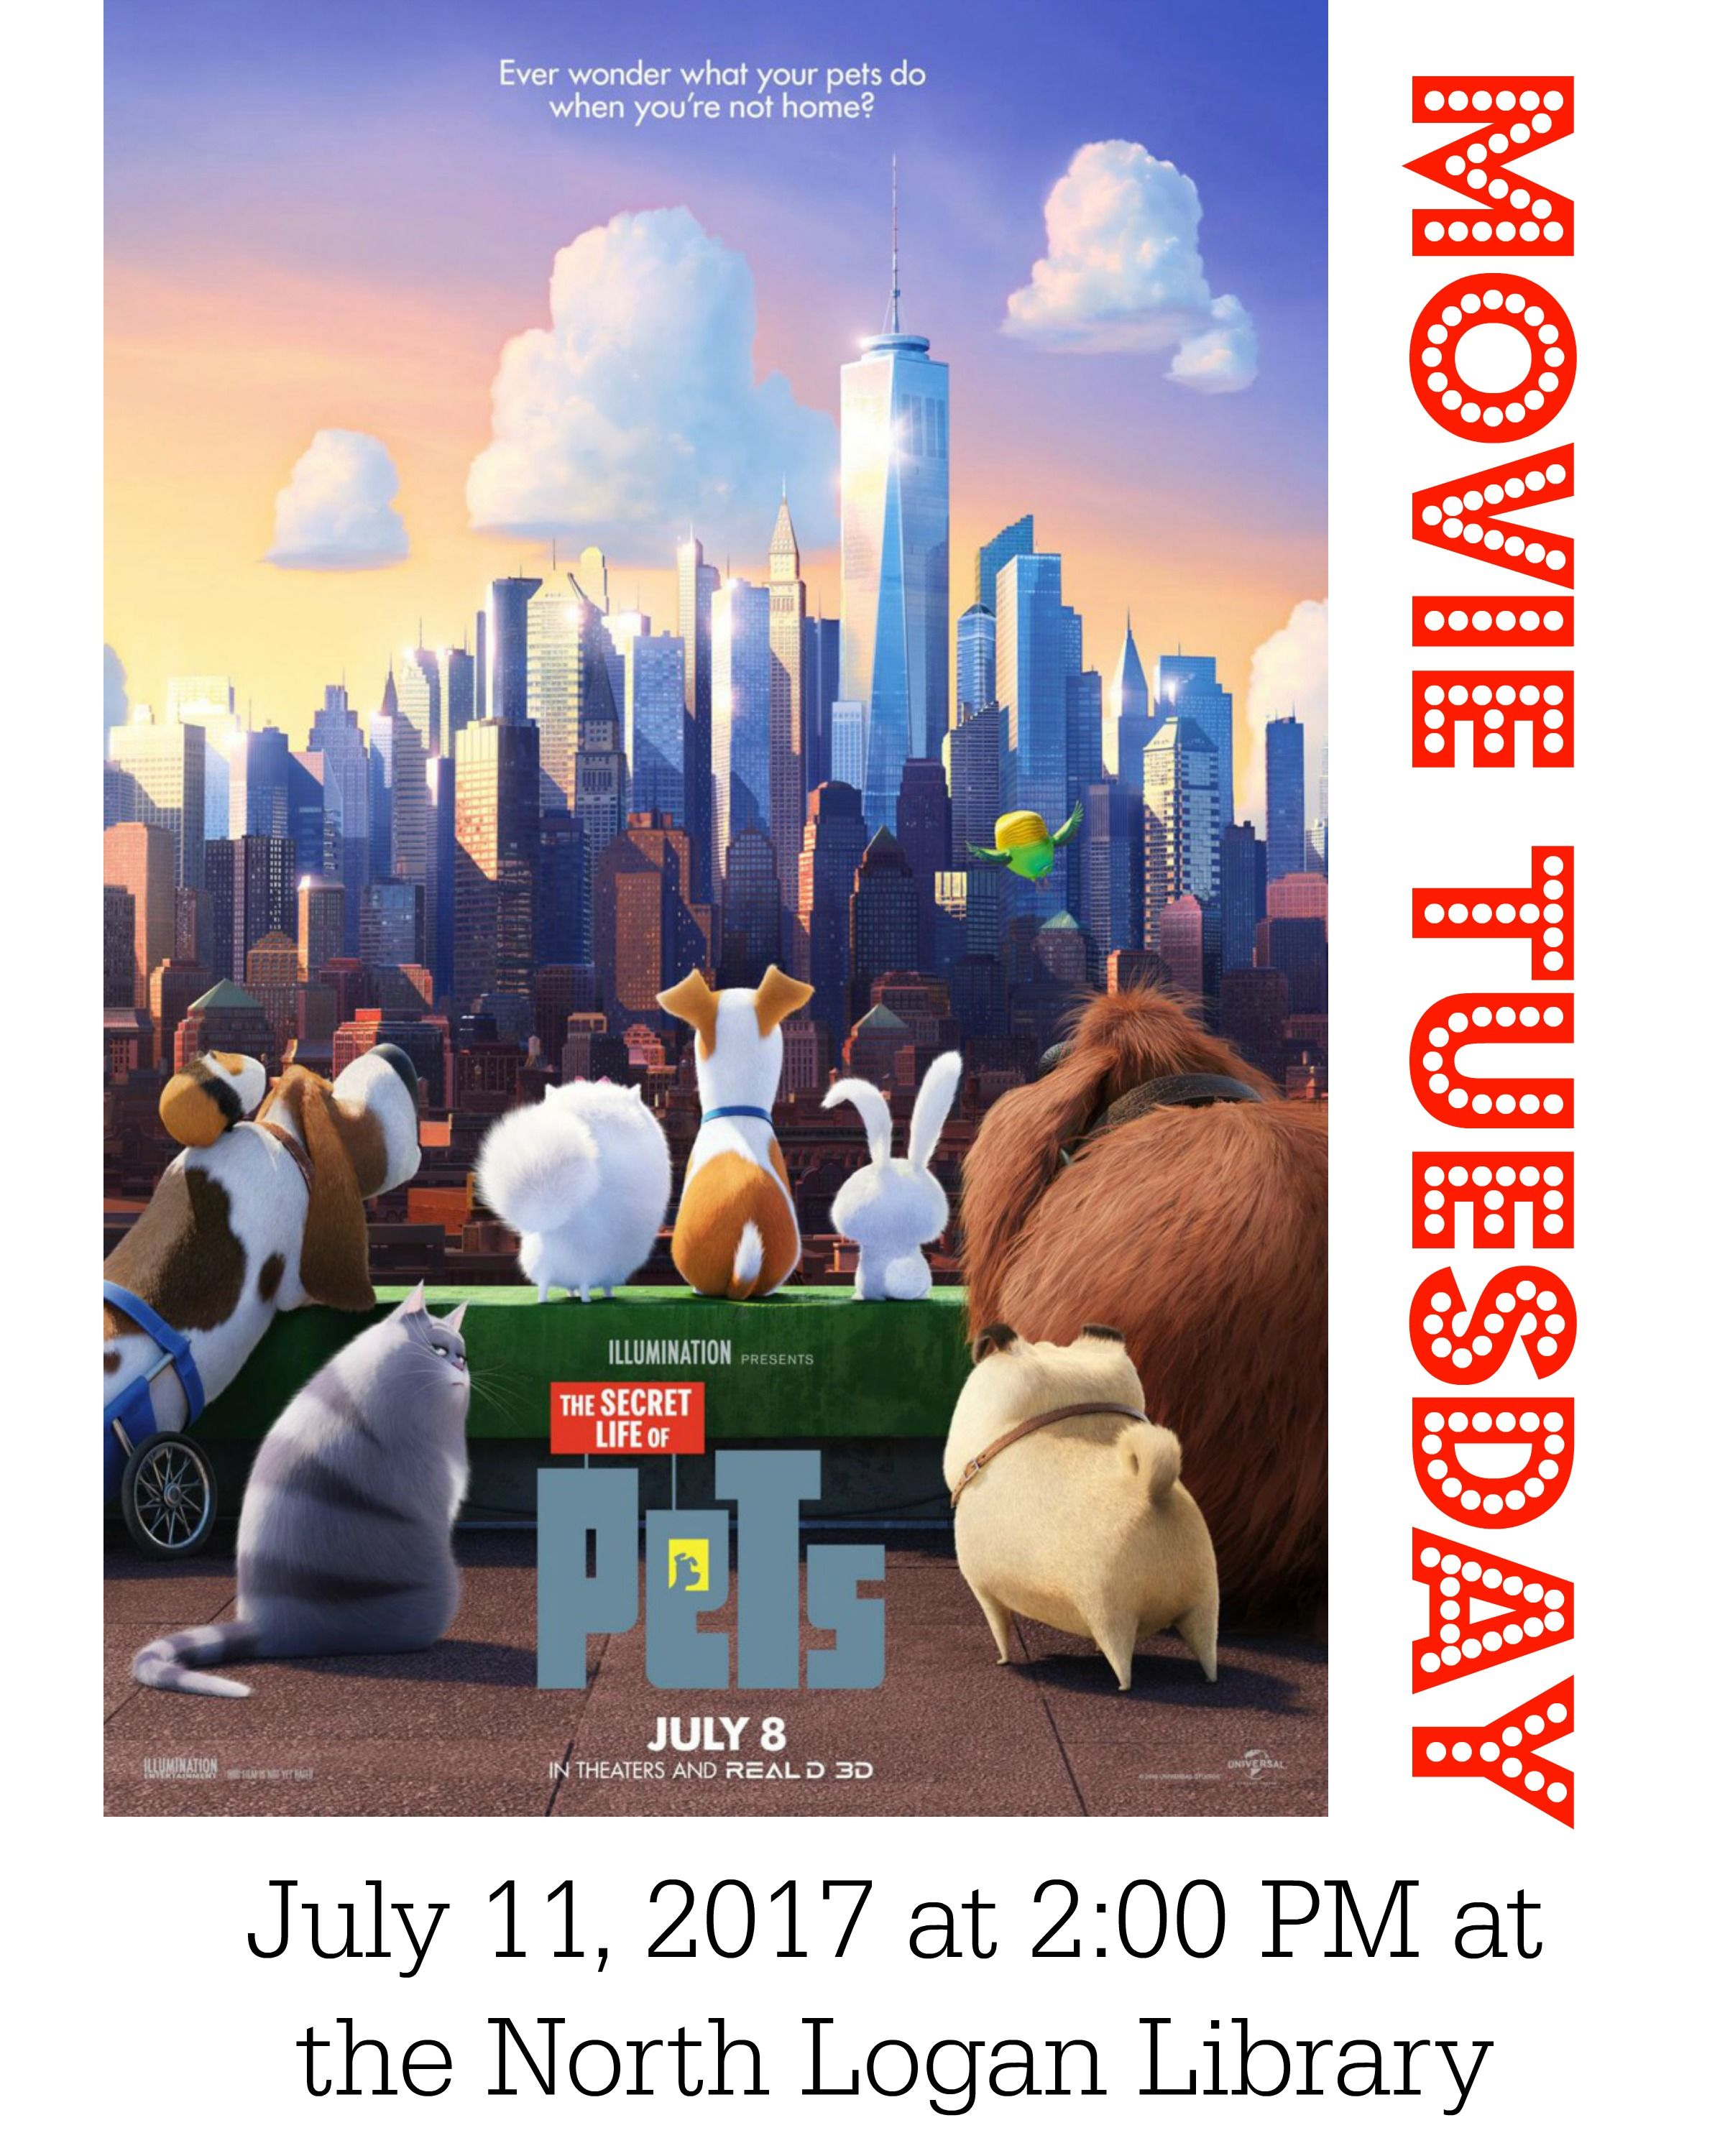 Bring Your Kids To An Exclusive Showing Of The Secret Life Of Pets